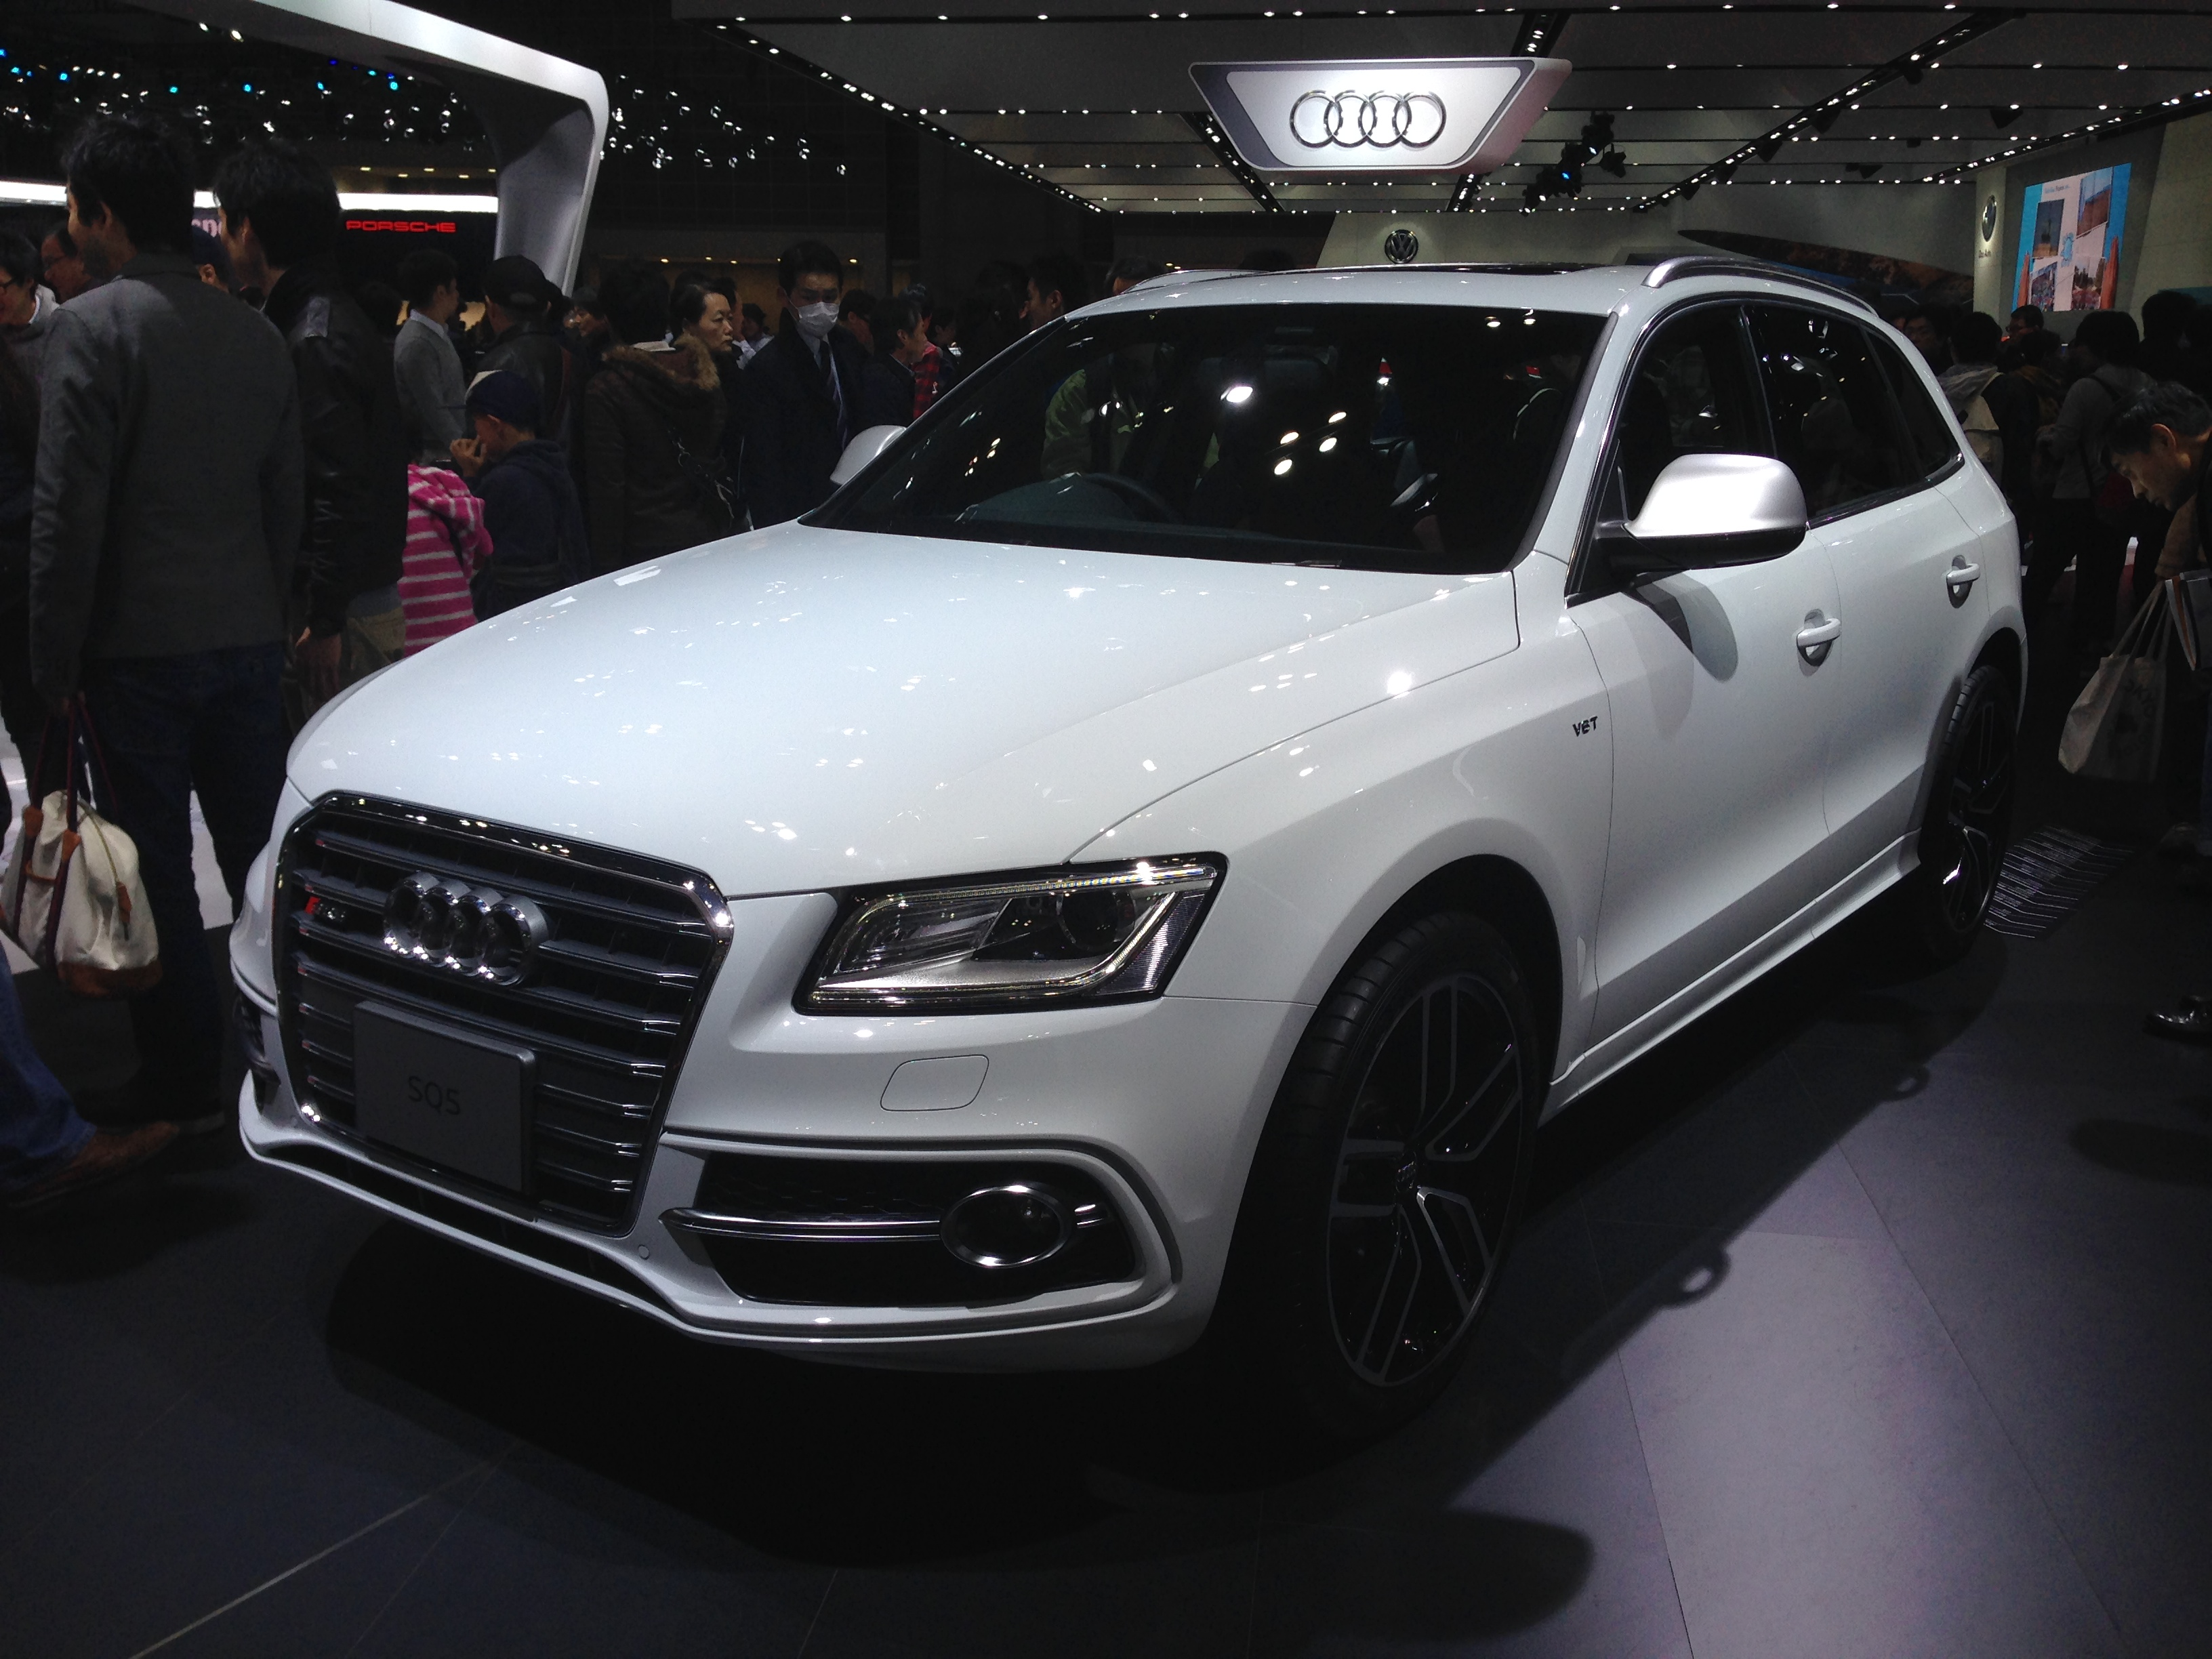 file audi sq5 3 0 tfsi front tokyo motor show wikimedia commons. Black Bedroom Furniture Sets. Home Design Ideas